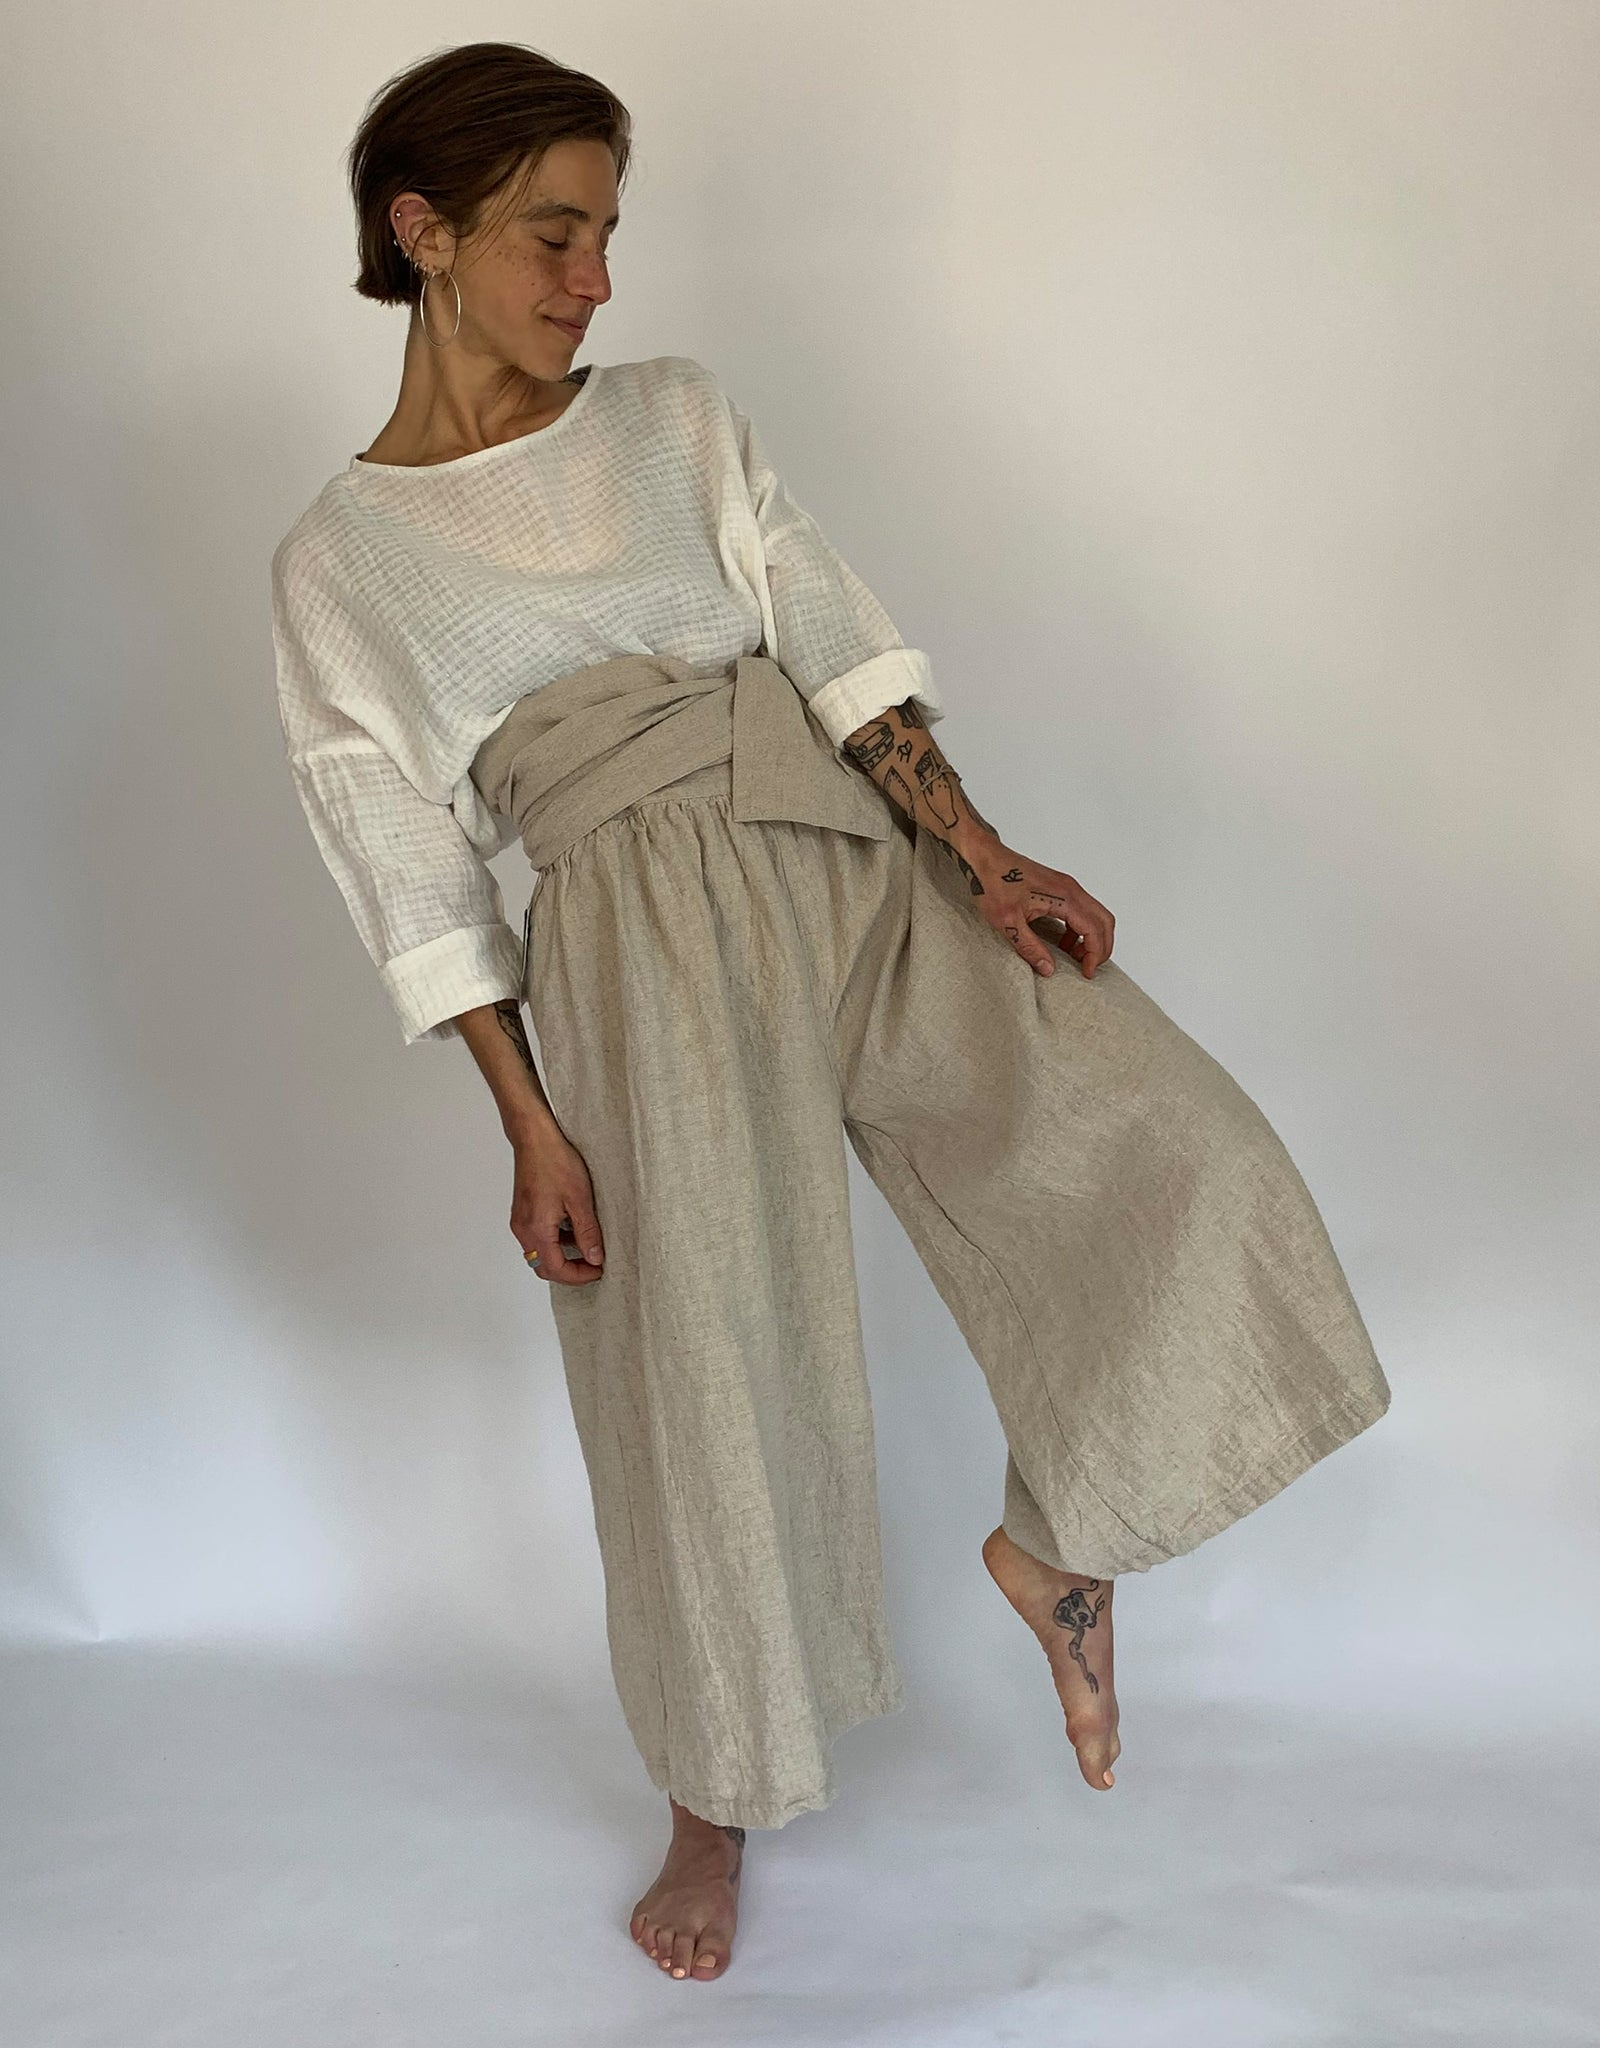 Model wears Ichi Antiquities Linen Tie Pant in Natural Linen. Available at FAWN Toronto.